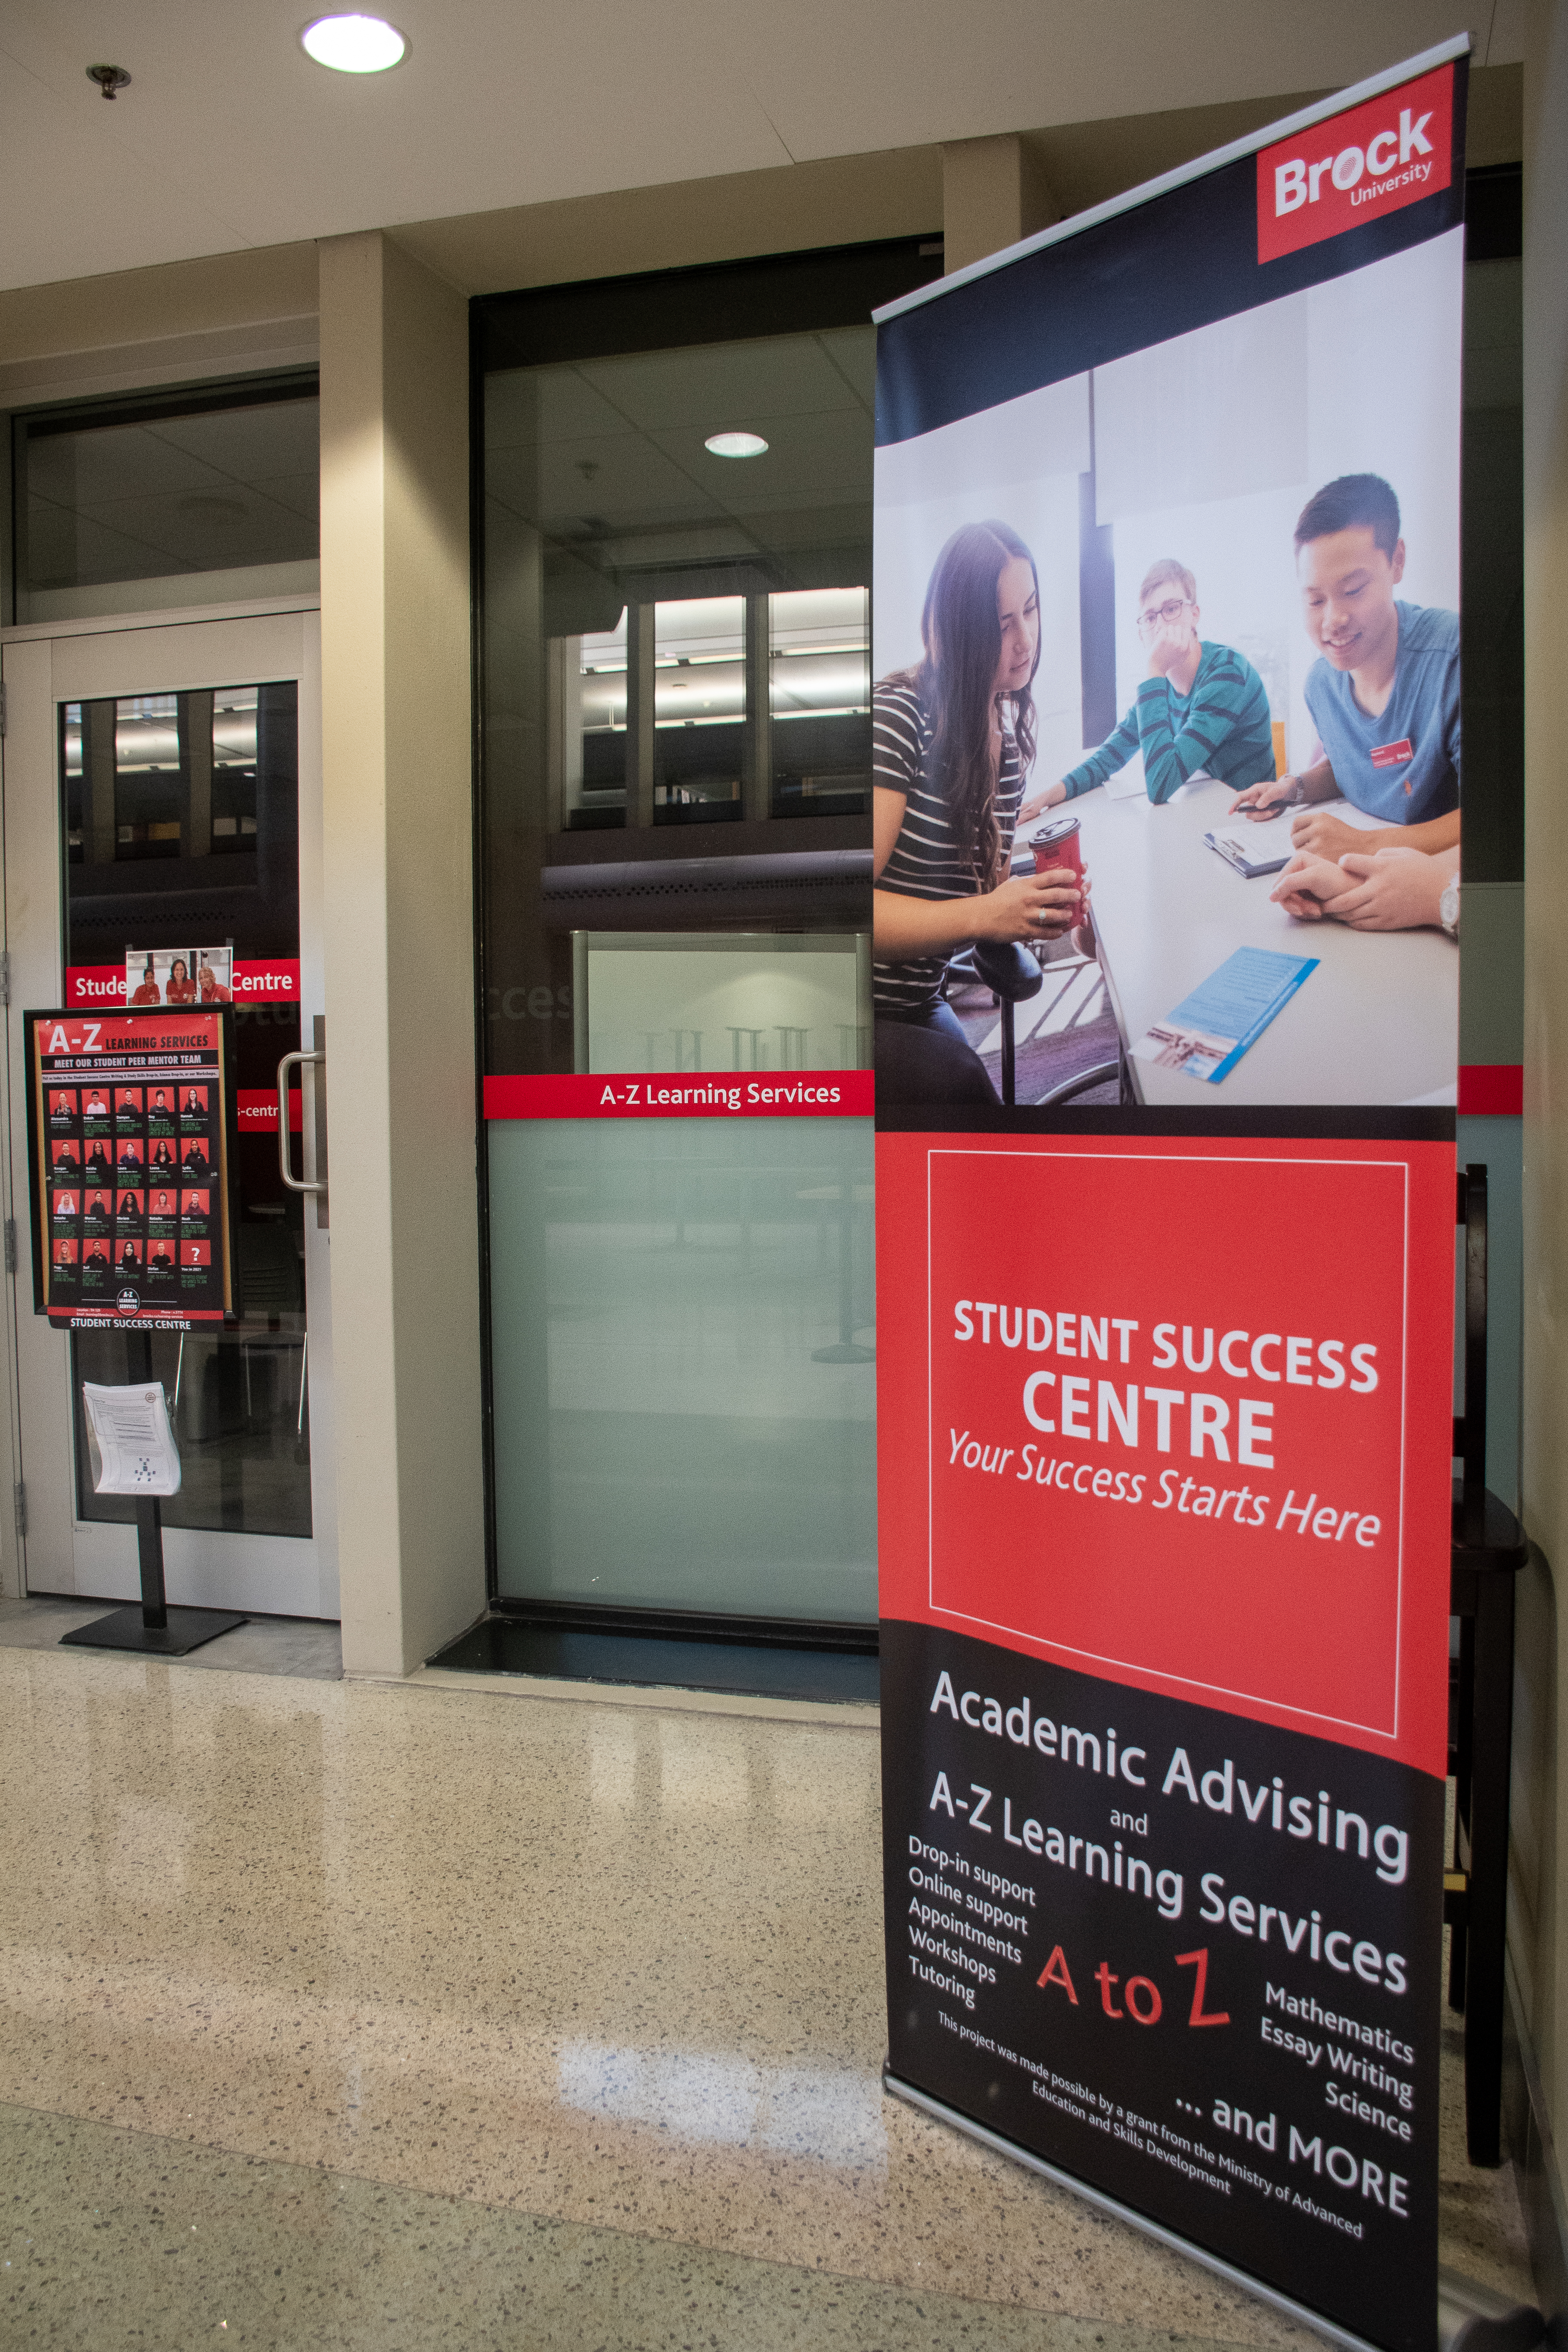 Academic services to help you thrive this year at Brock